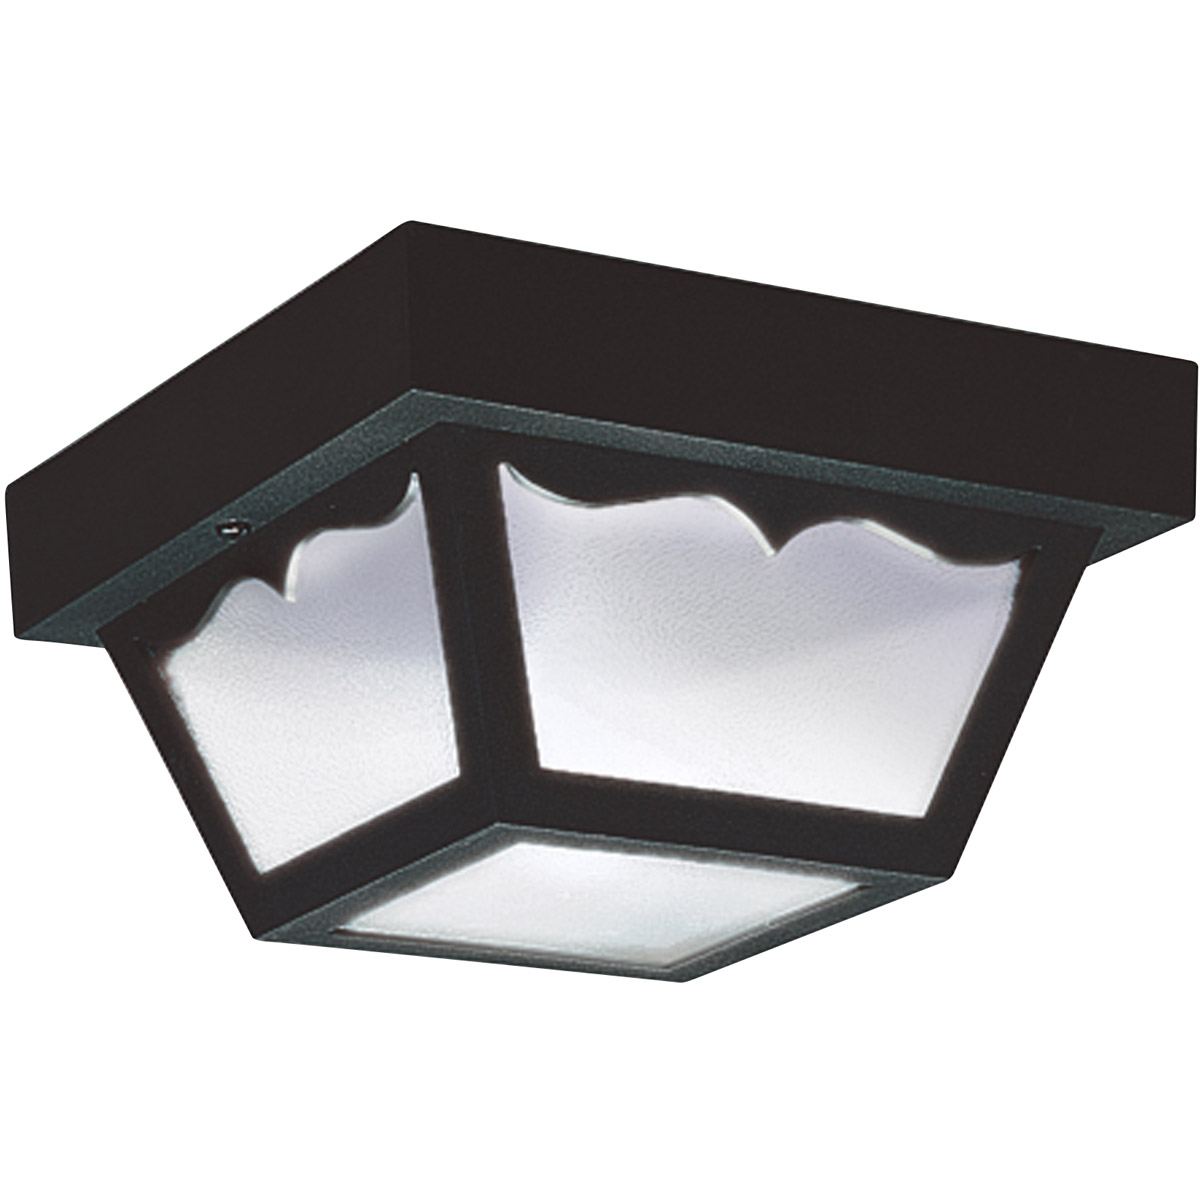 Sea Gull 7567-32 Signature 1 Light 8 inch Clear Outdoor Ceiling Fixture in Black photo